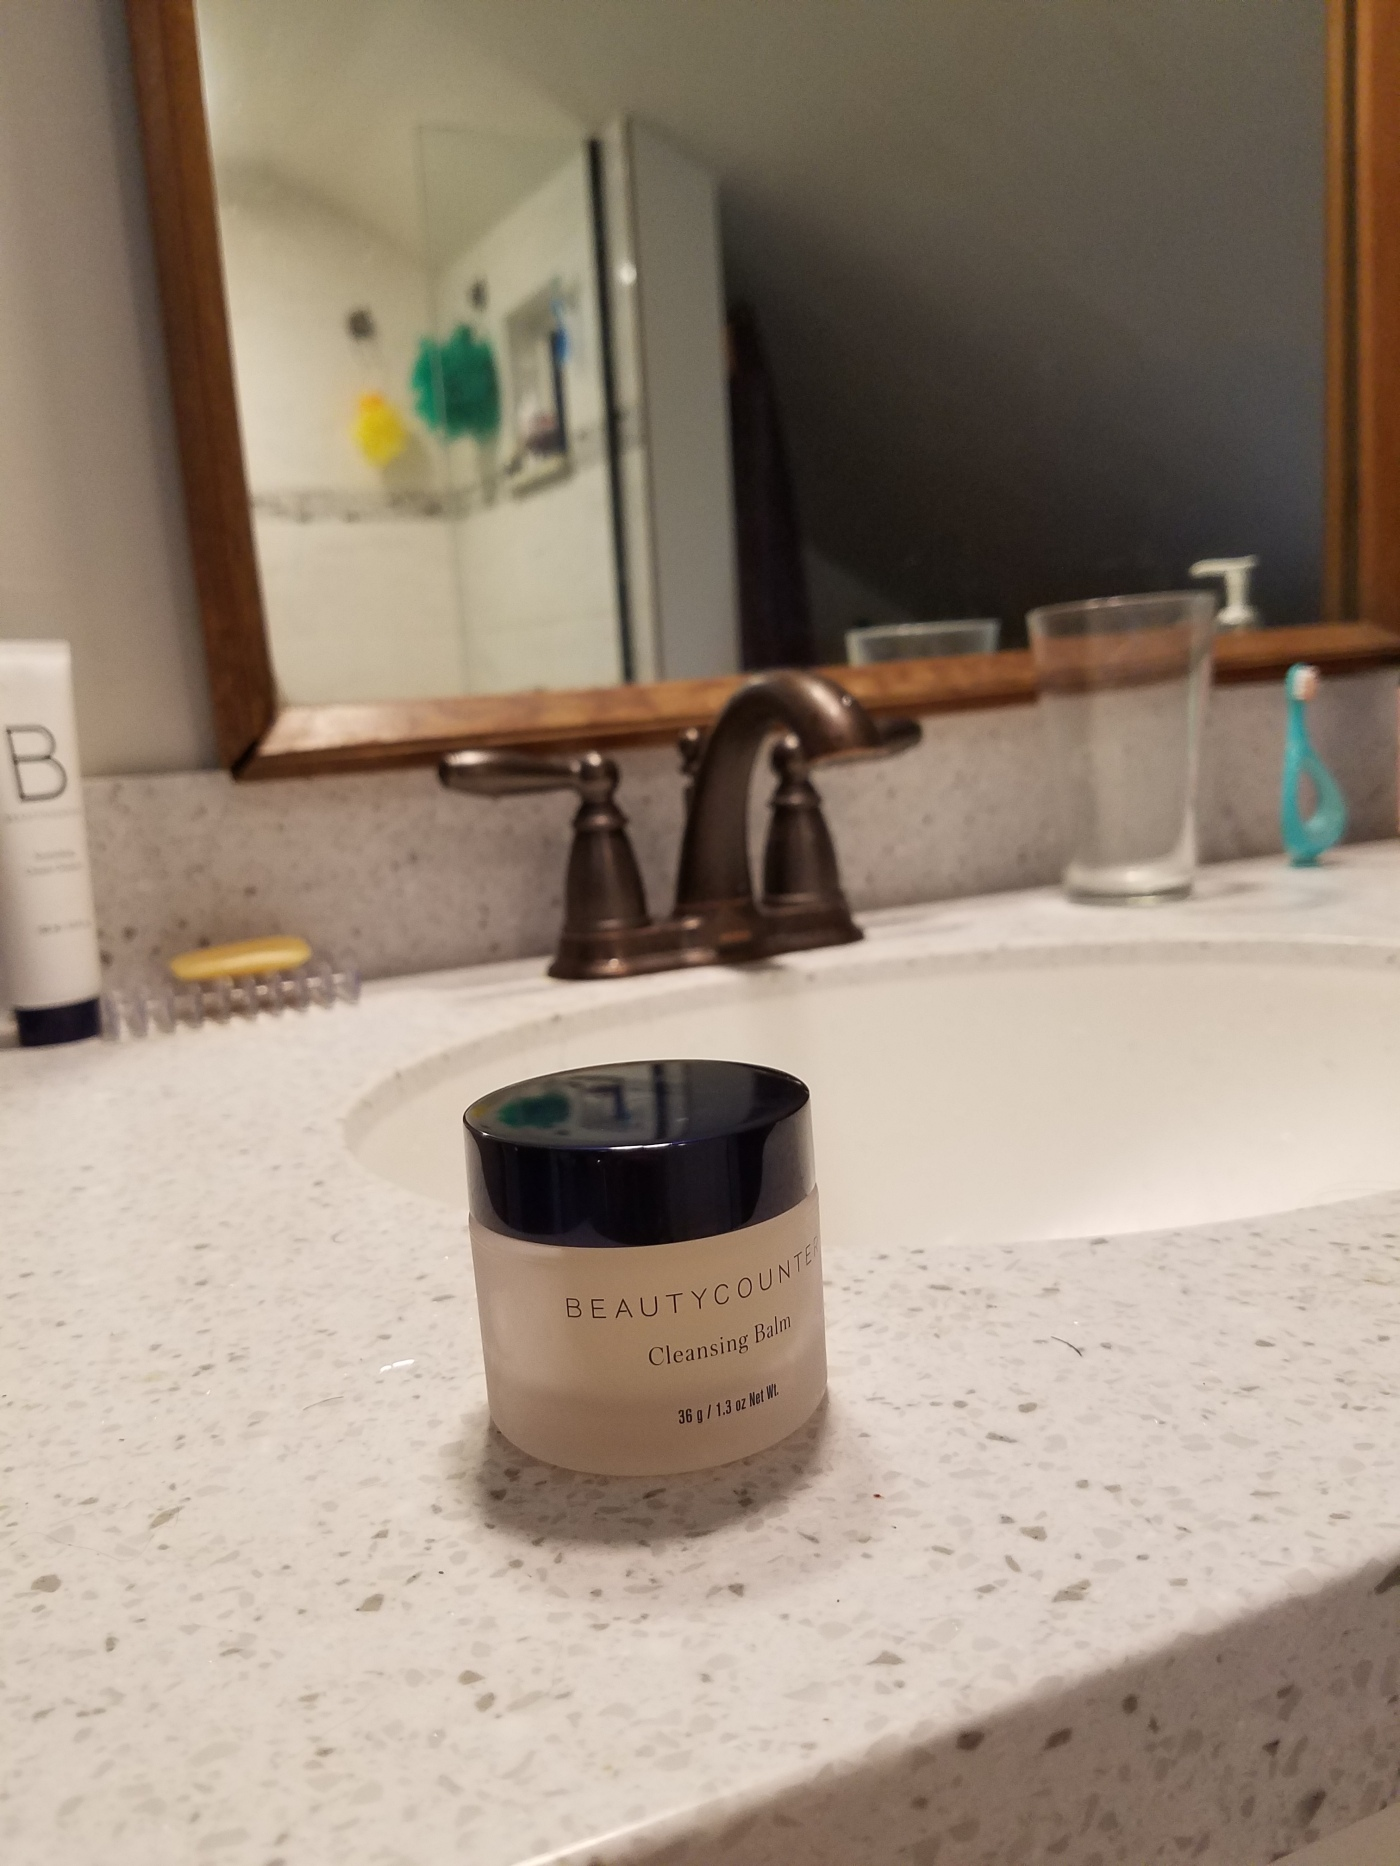 Better Beauty Vermont Beautycounter Cleansing Balm